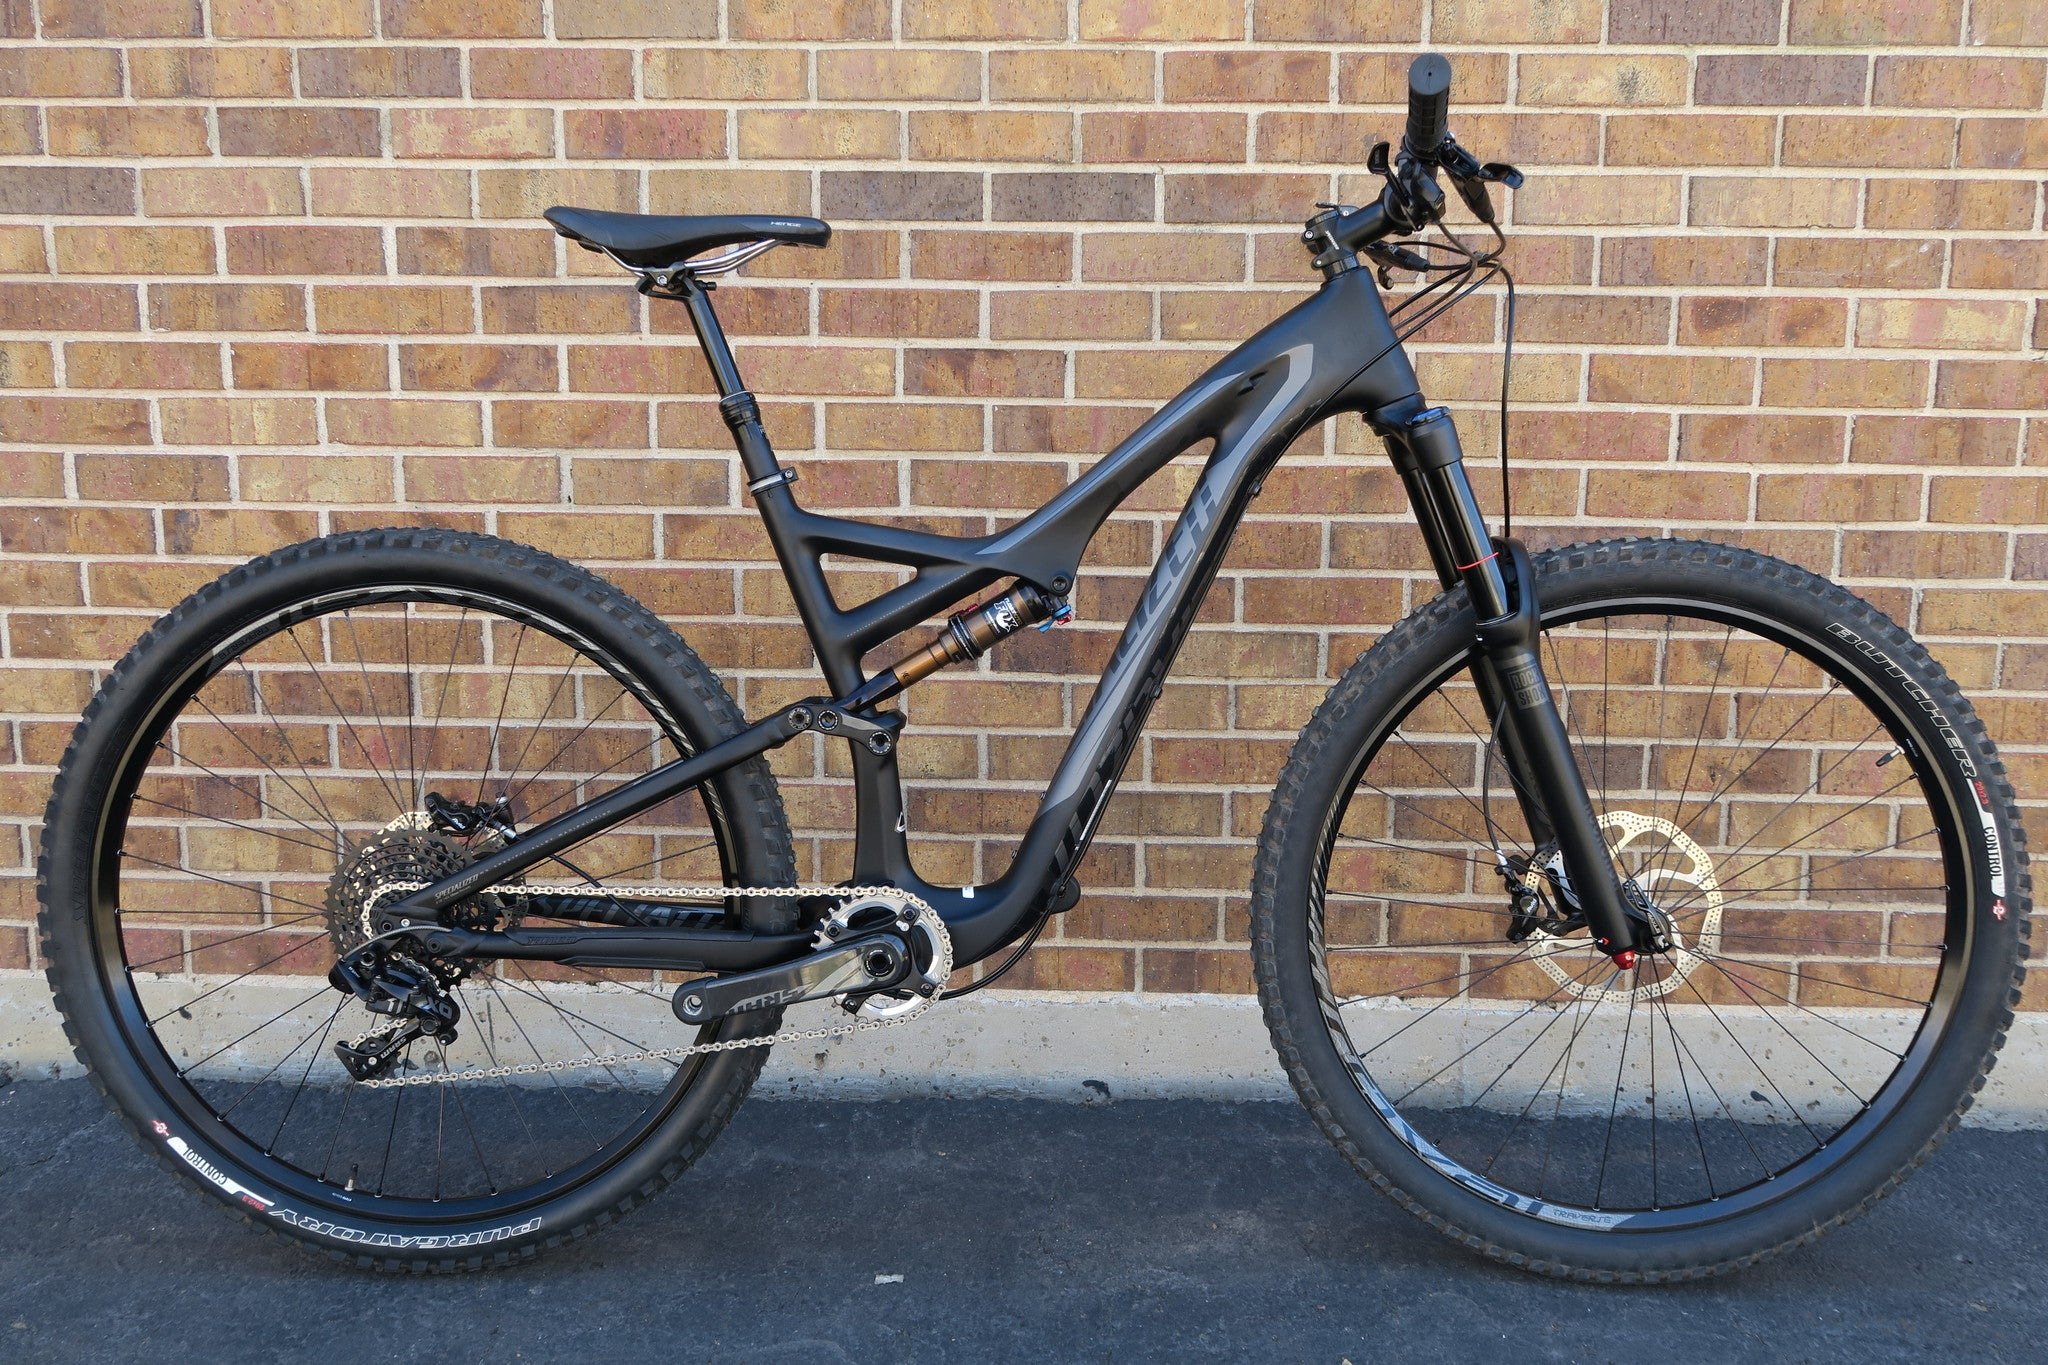 2014 SPECIALIZED STUMPJUMPER EXPERT EVO 29